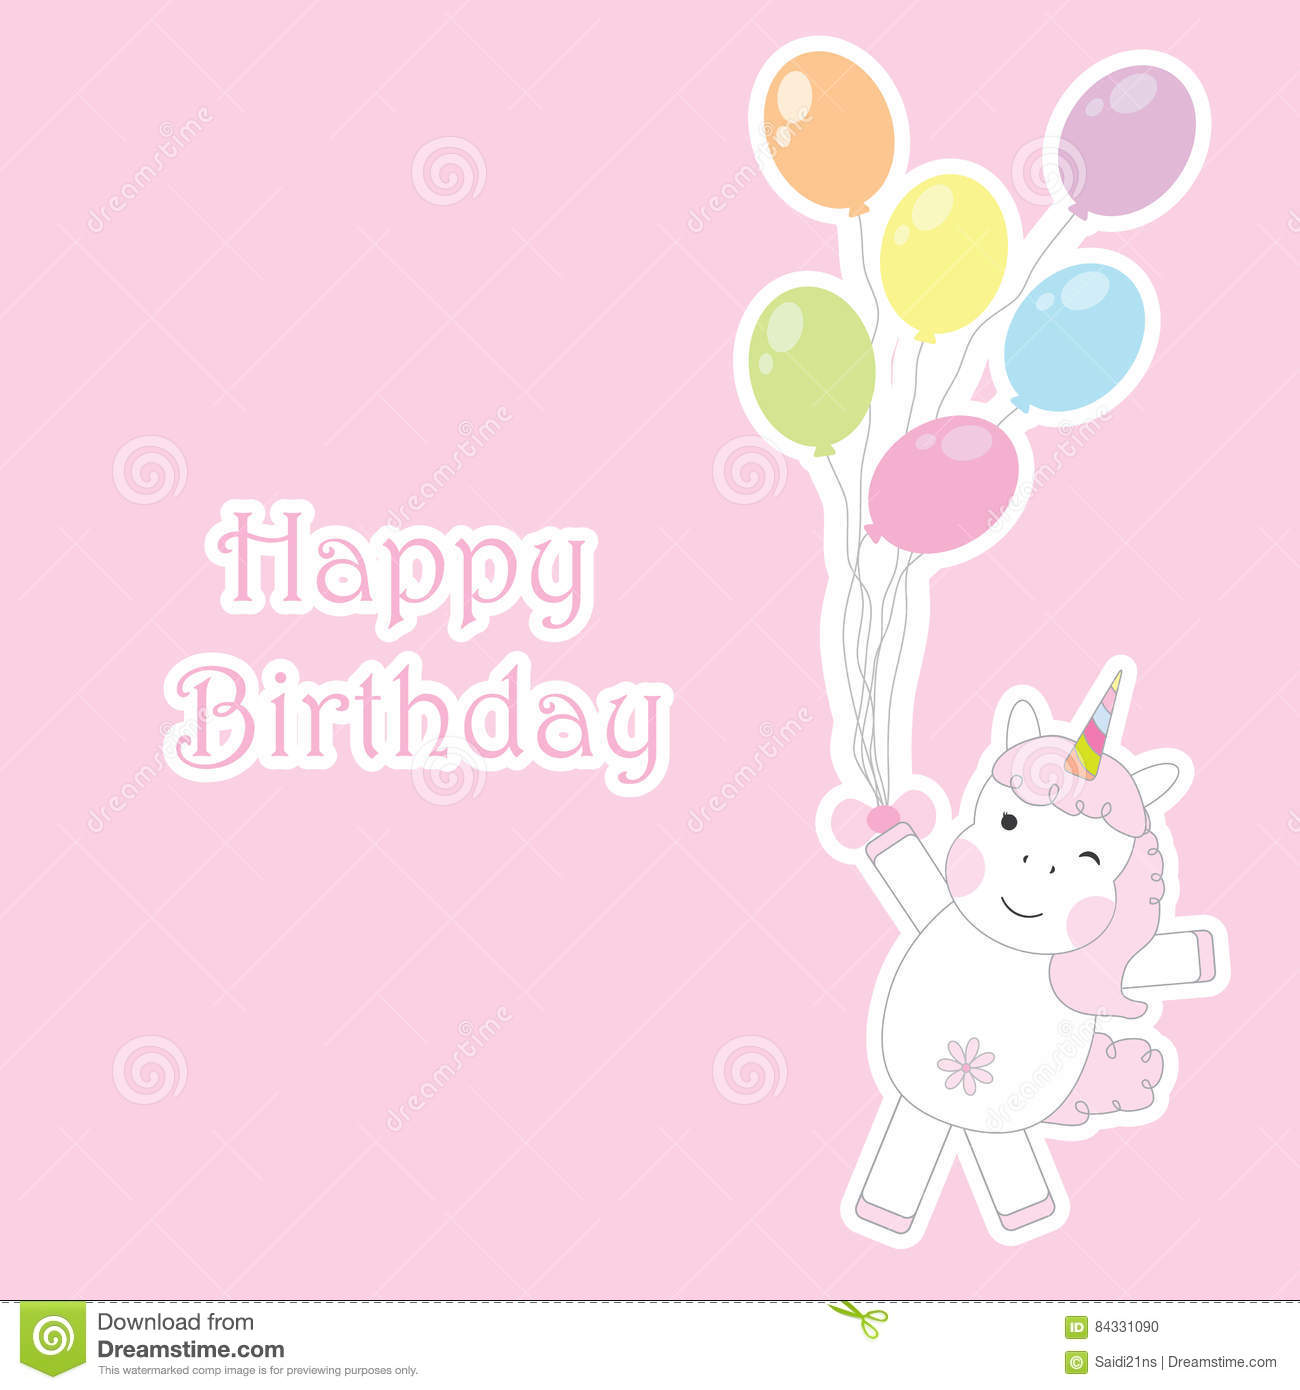 Birthday Card With Cute Unicorn Girl Brings Colorful Balloons On Pink Background For Kid Invitation